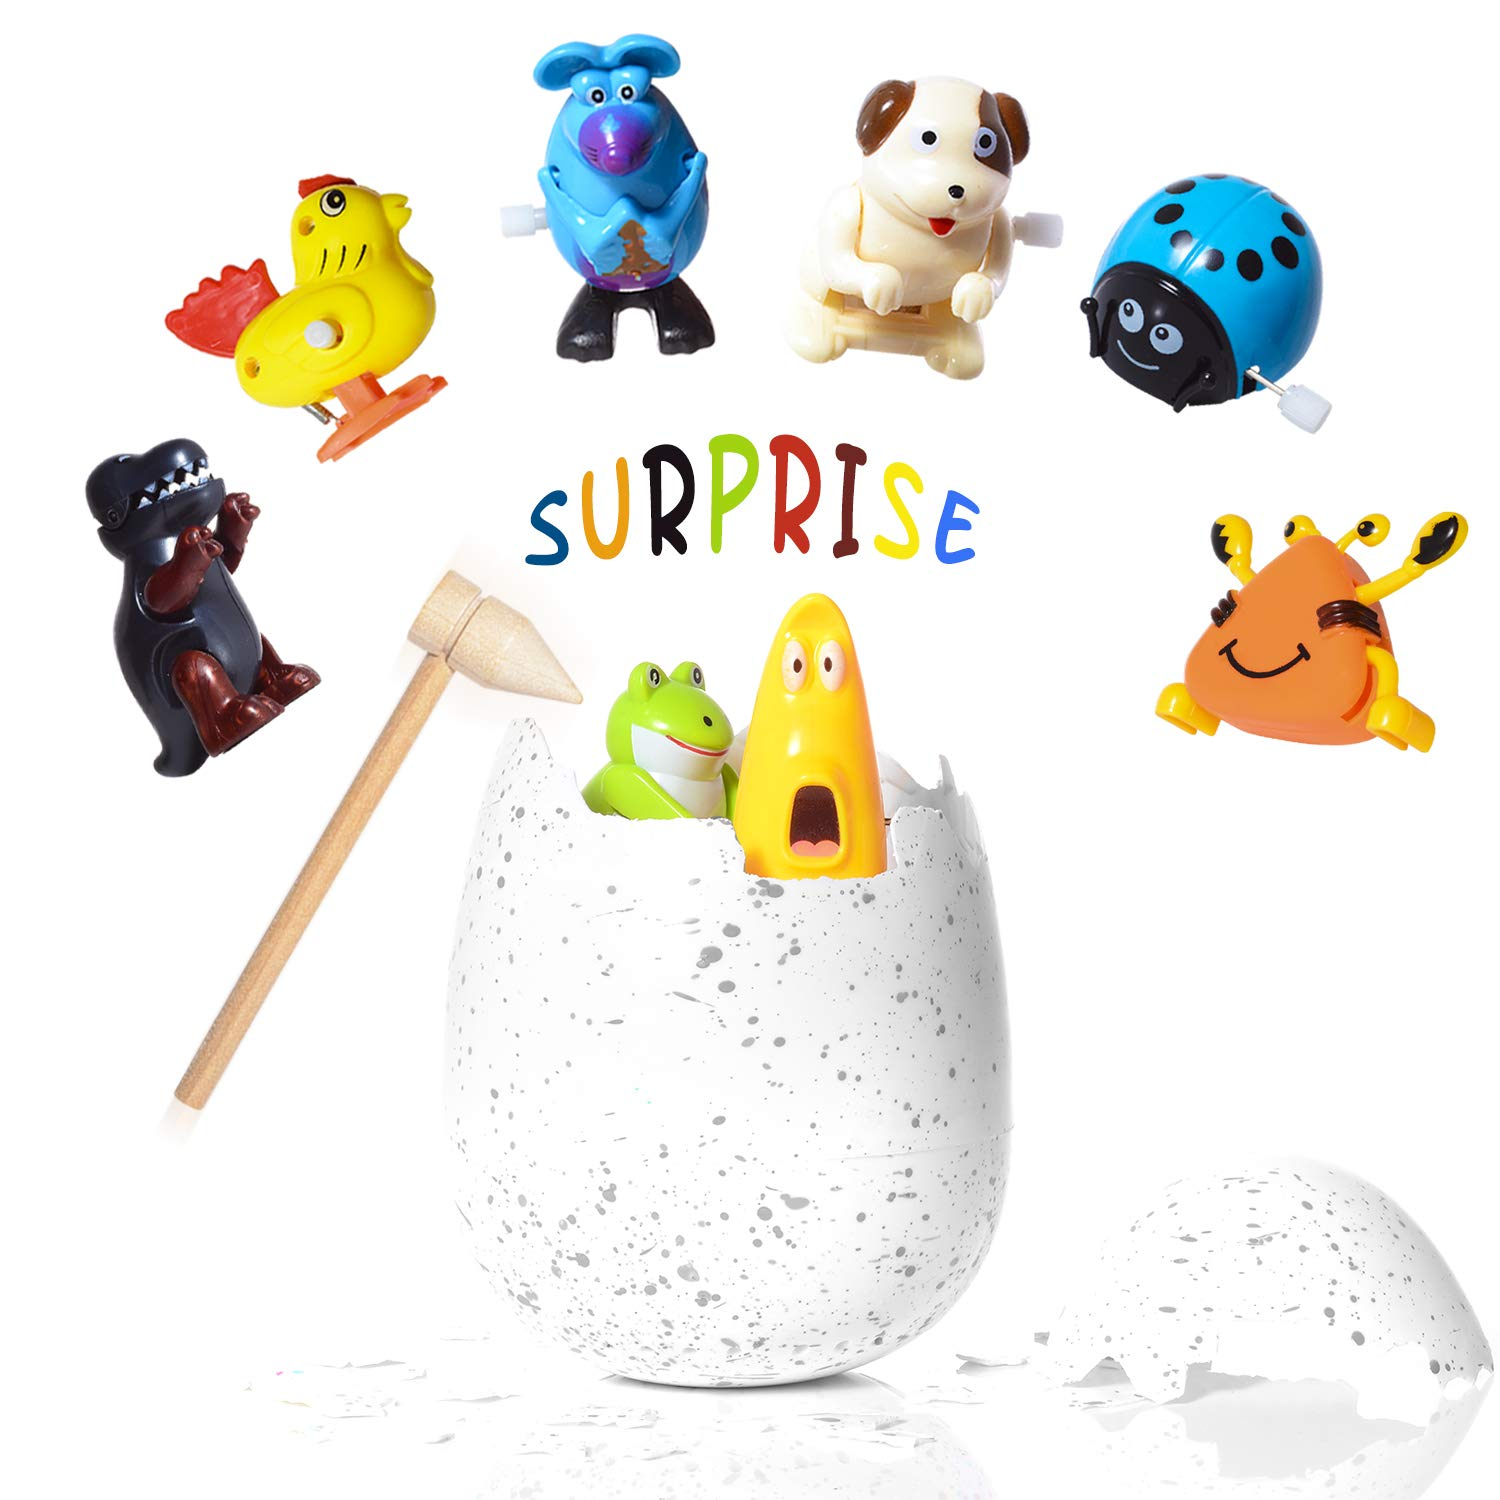 WishaLife Hatchimal Surprise Hatching Egg - Set of 8 Wind Up Animals Toys for Kids Birthday Gifts Party Favor (Includes Mouse, Dog, Dinosaur, Chick, Frog, Ladybug, Crab, Larva, Wooden Hammer) by WishaLife (Image #1)